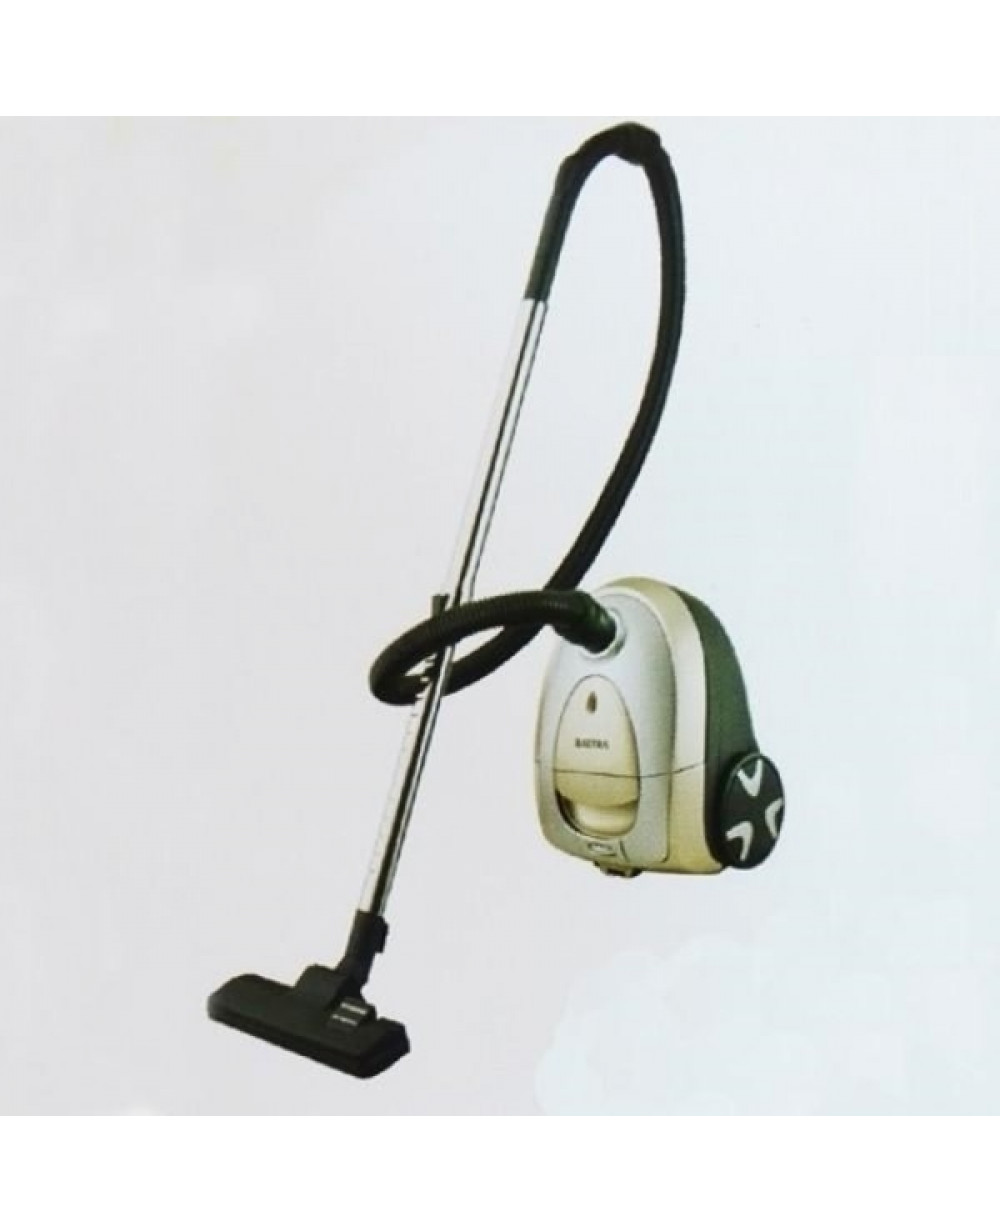 Baltra Cruze Vacuum Cleaner - 1600 Watt